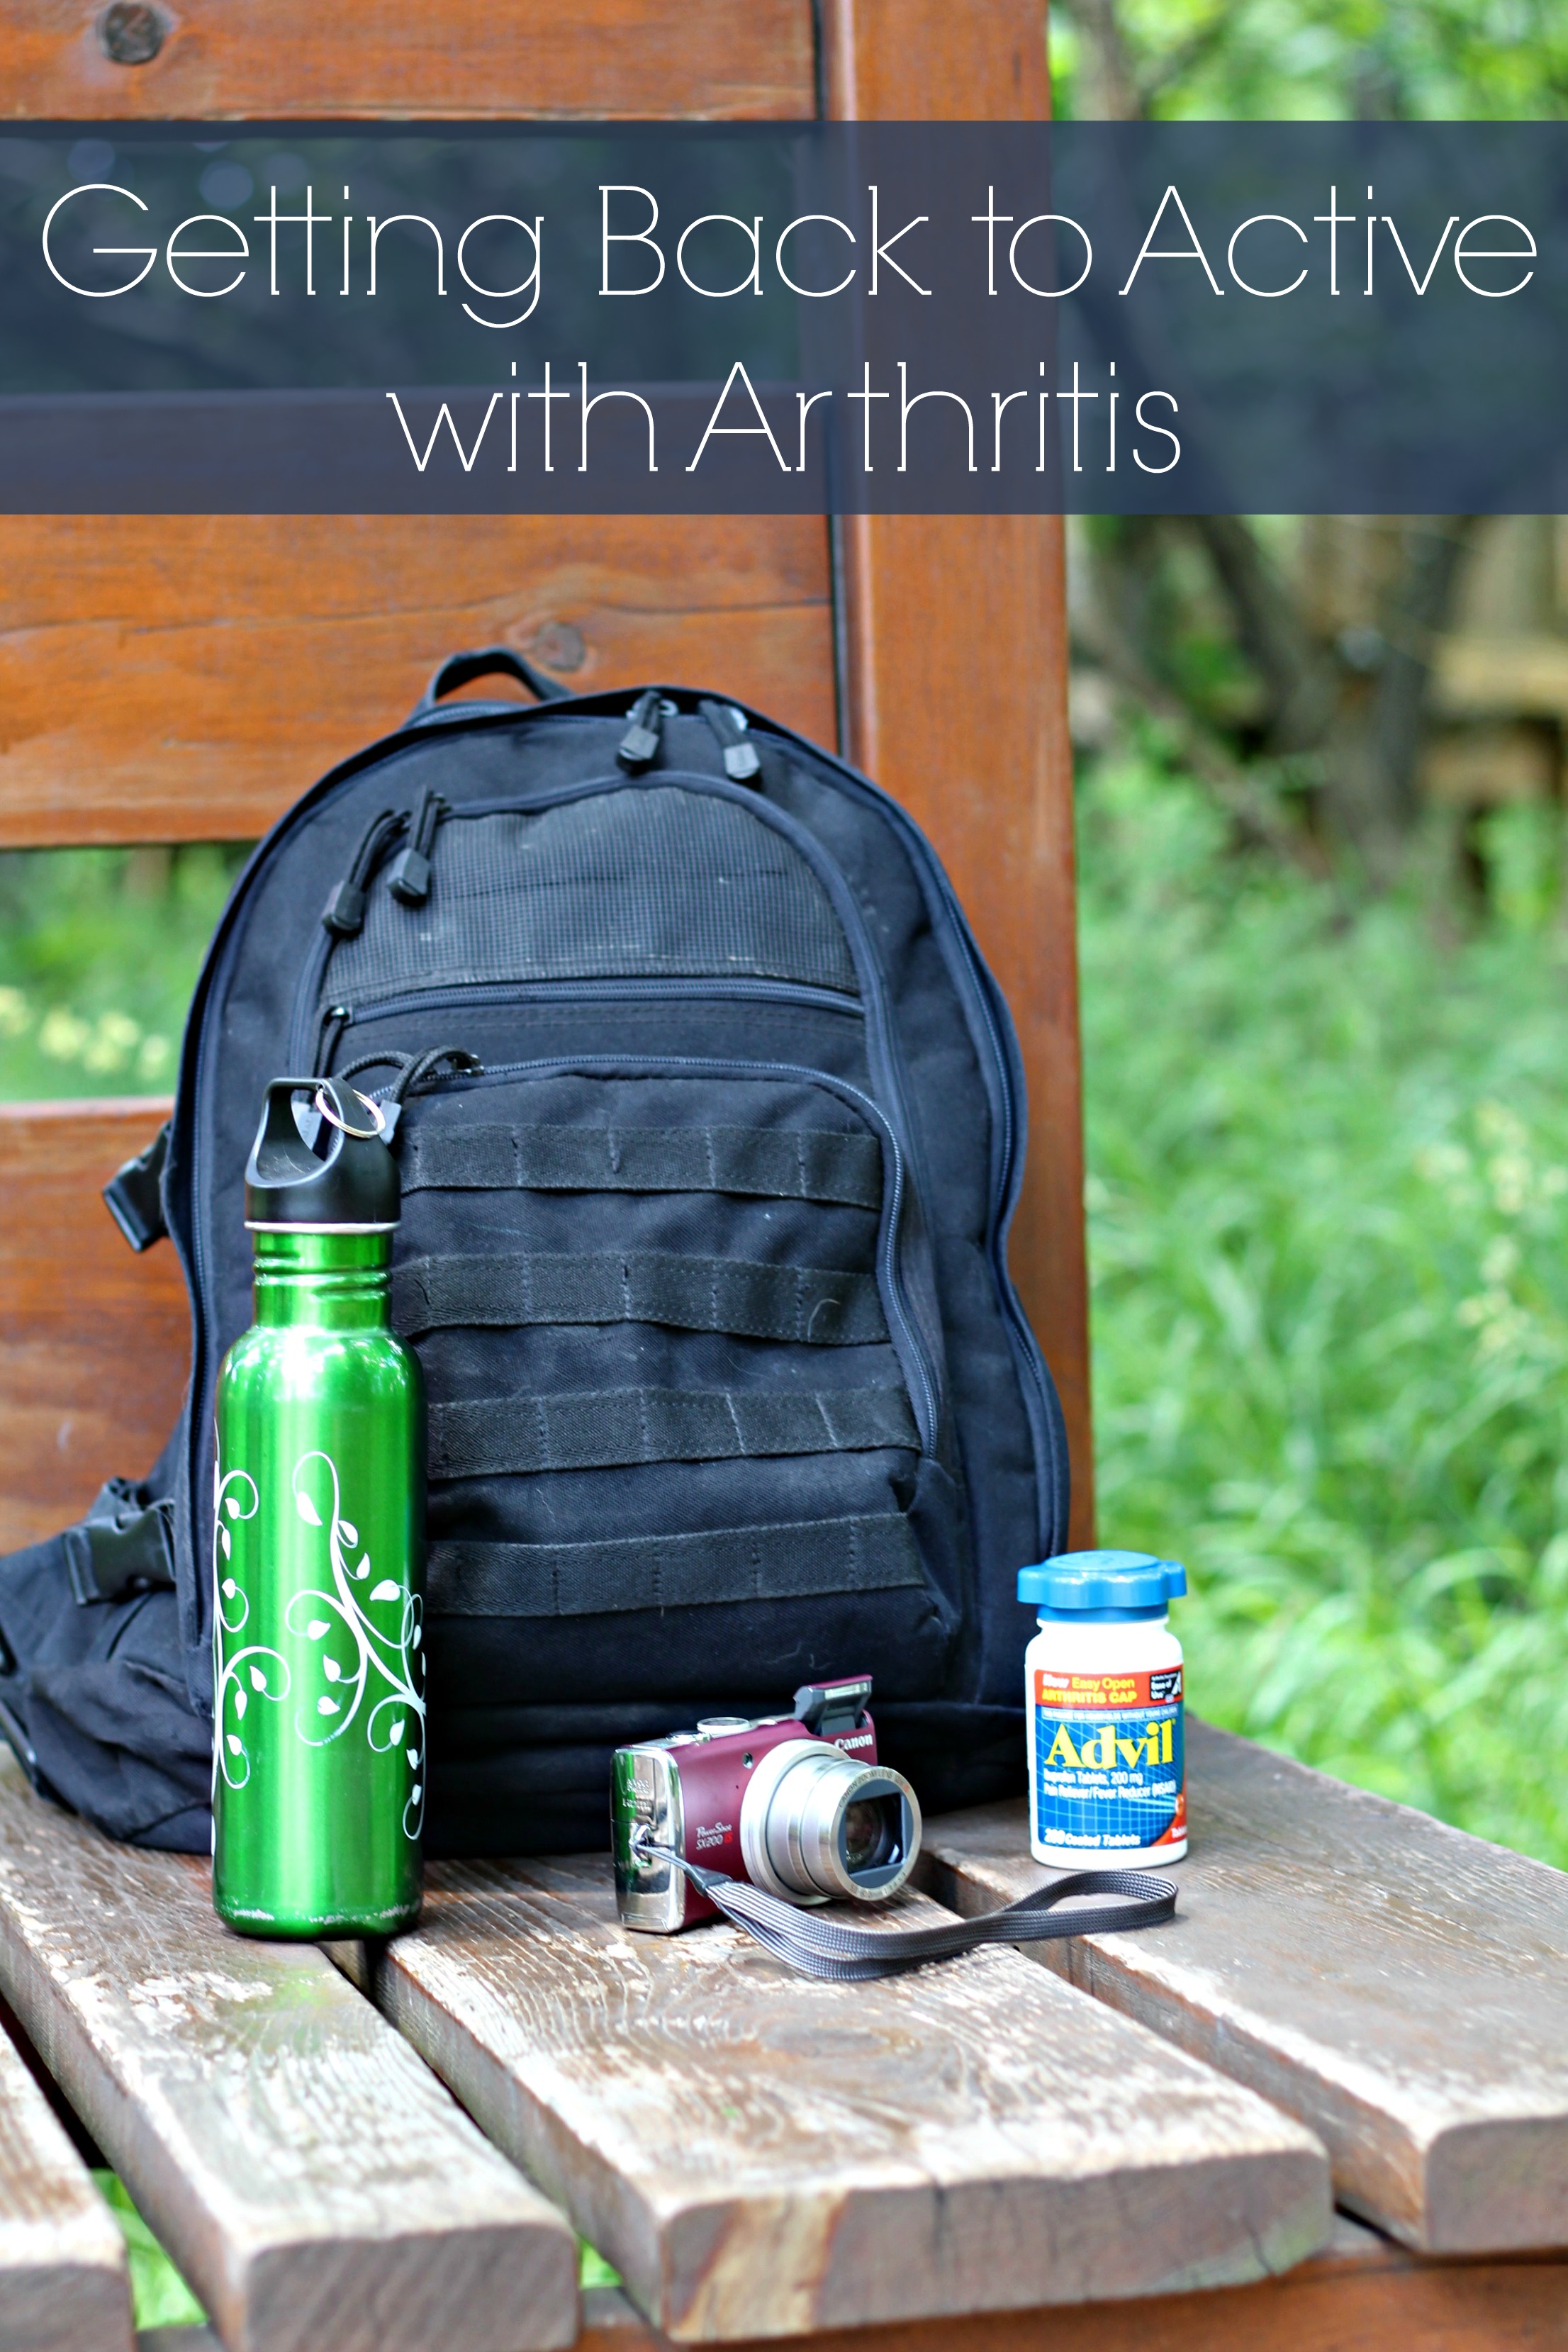 Getting Back to Active with Arthritis